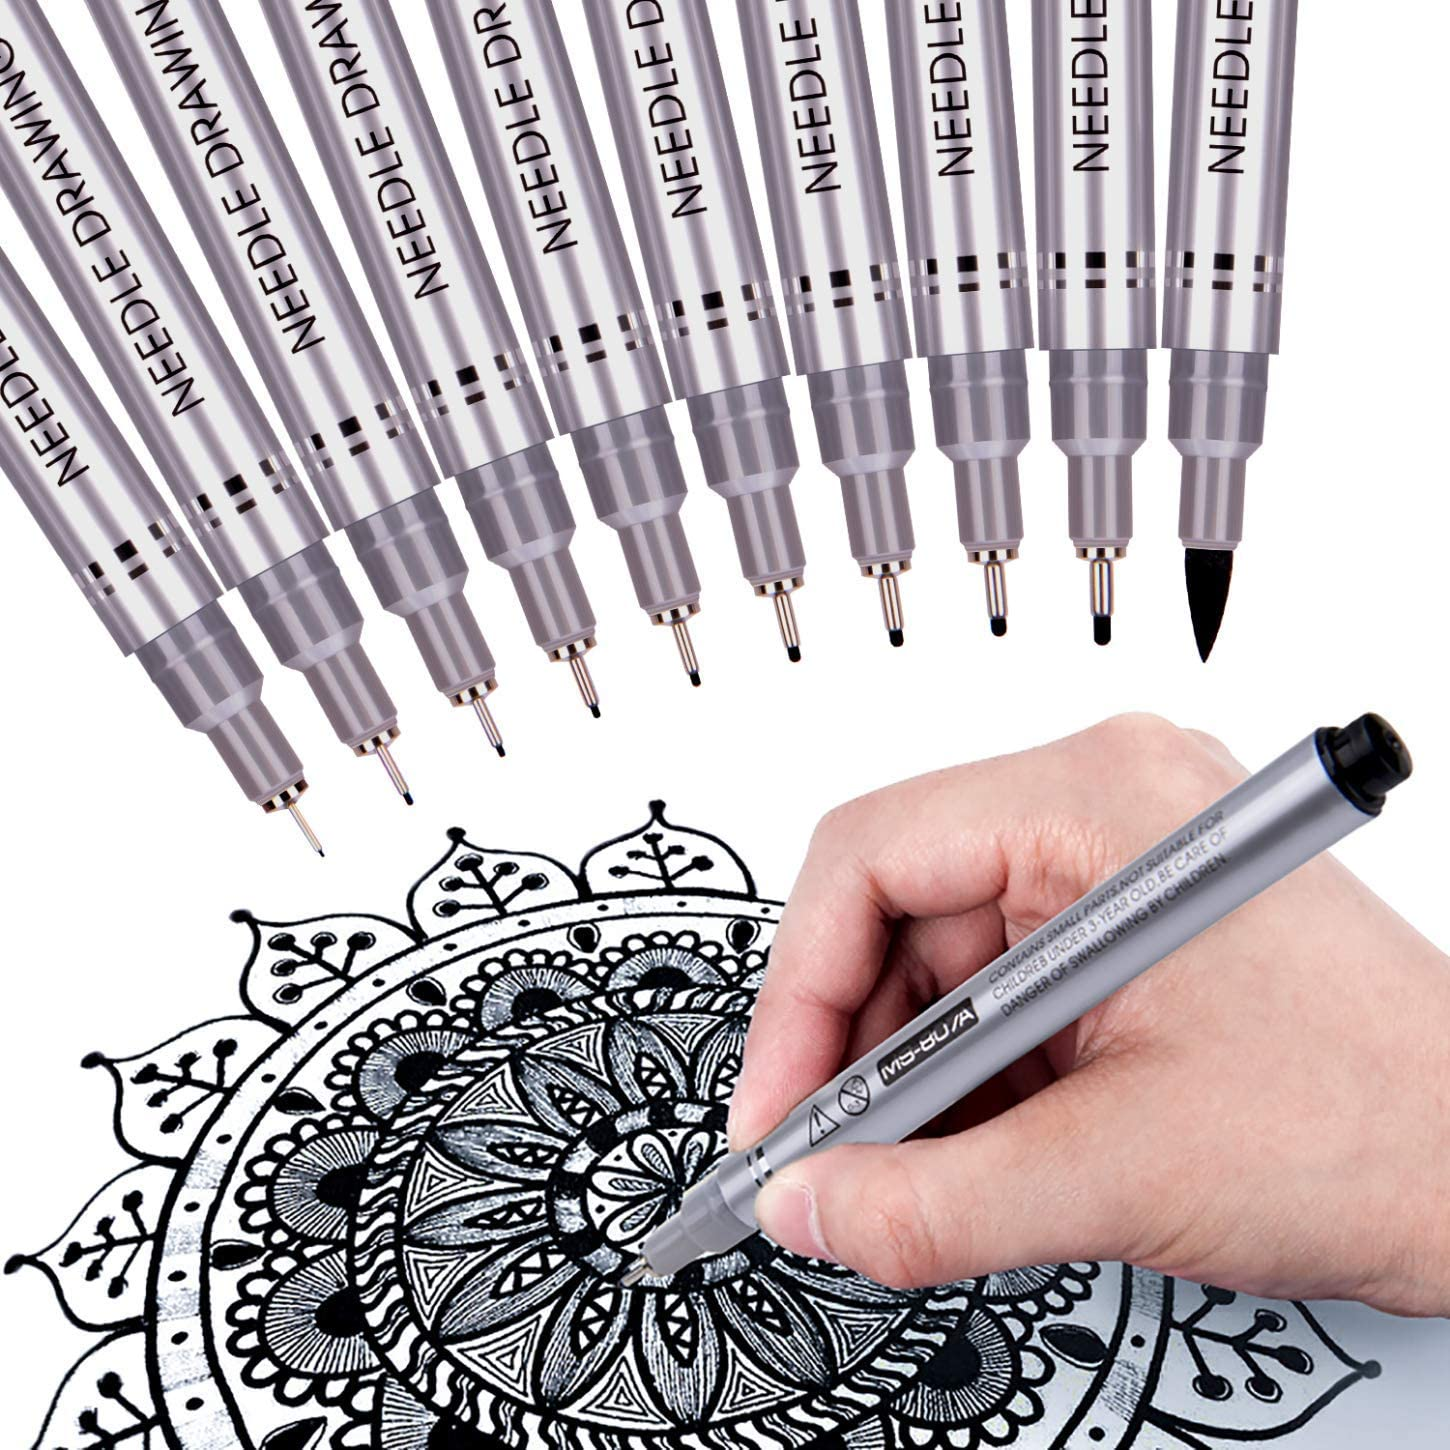 Set of 9 Black Fineliner Pens,Micro-Pen Ink Bullet Journaling,Waterproof Archival Ink Micro Fine Point Drawing Pens for Sketching Comic Manga Illustration Anime Drawing